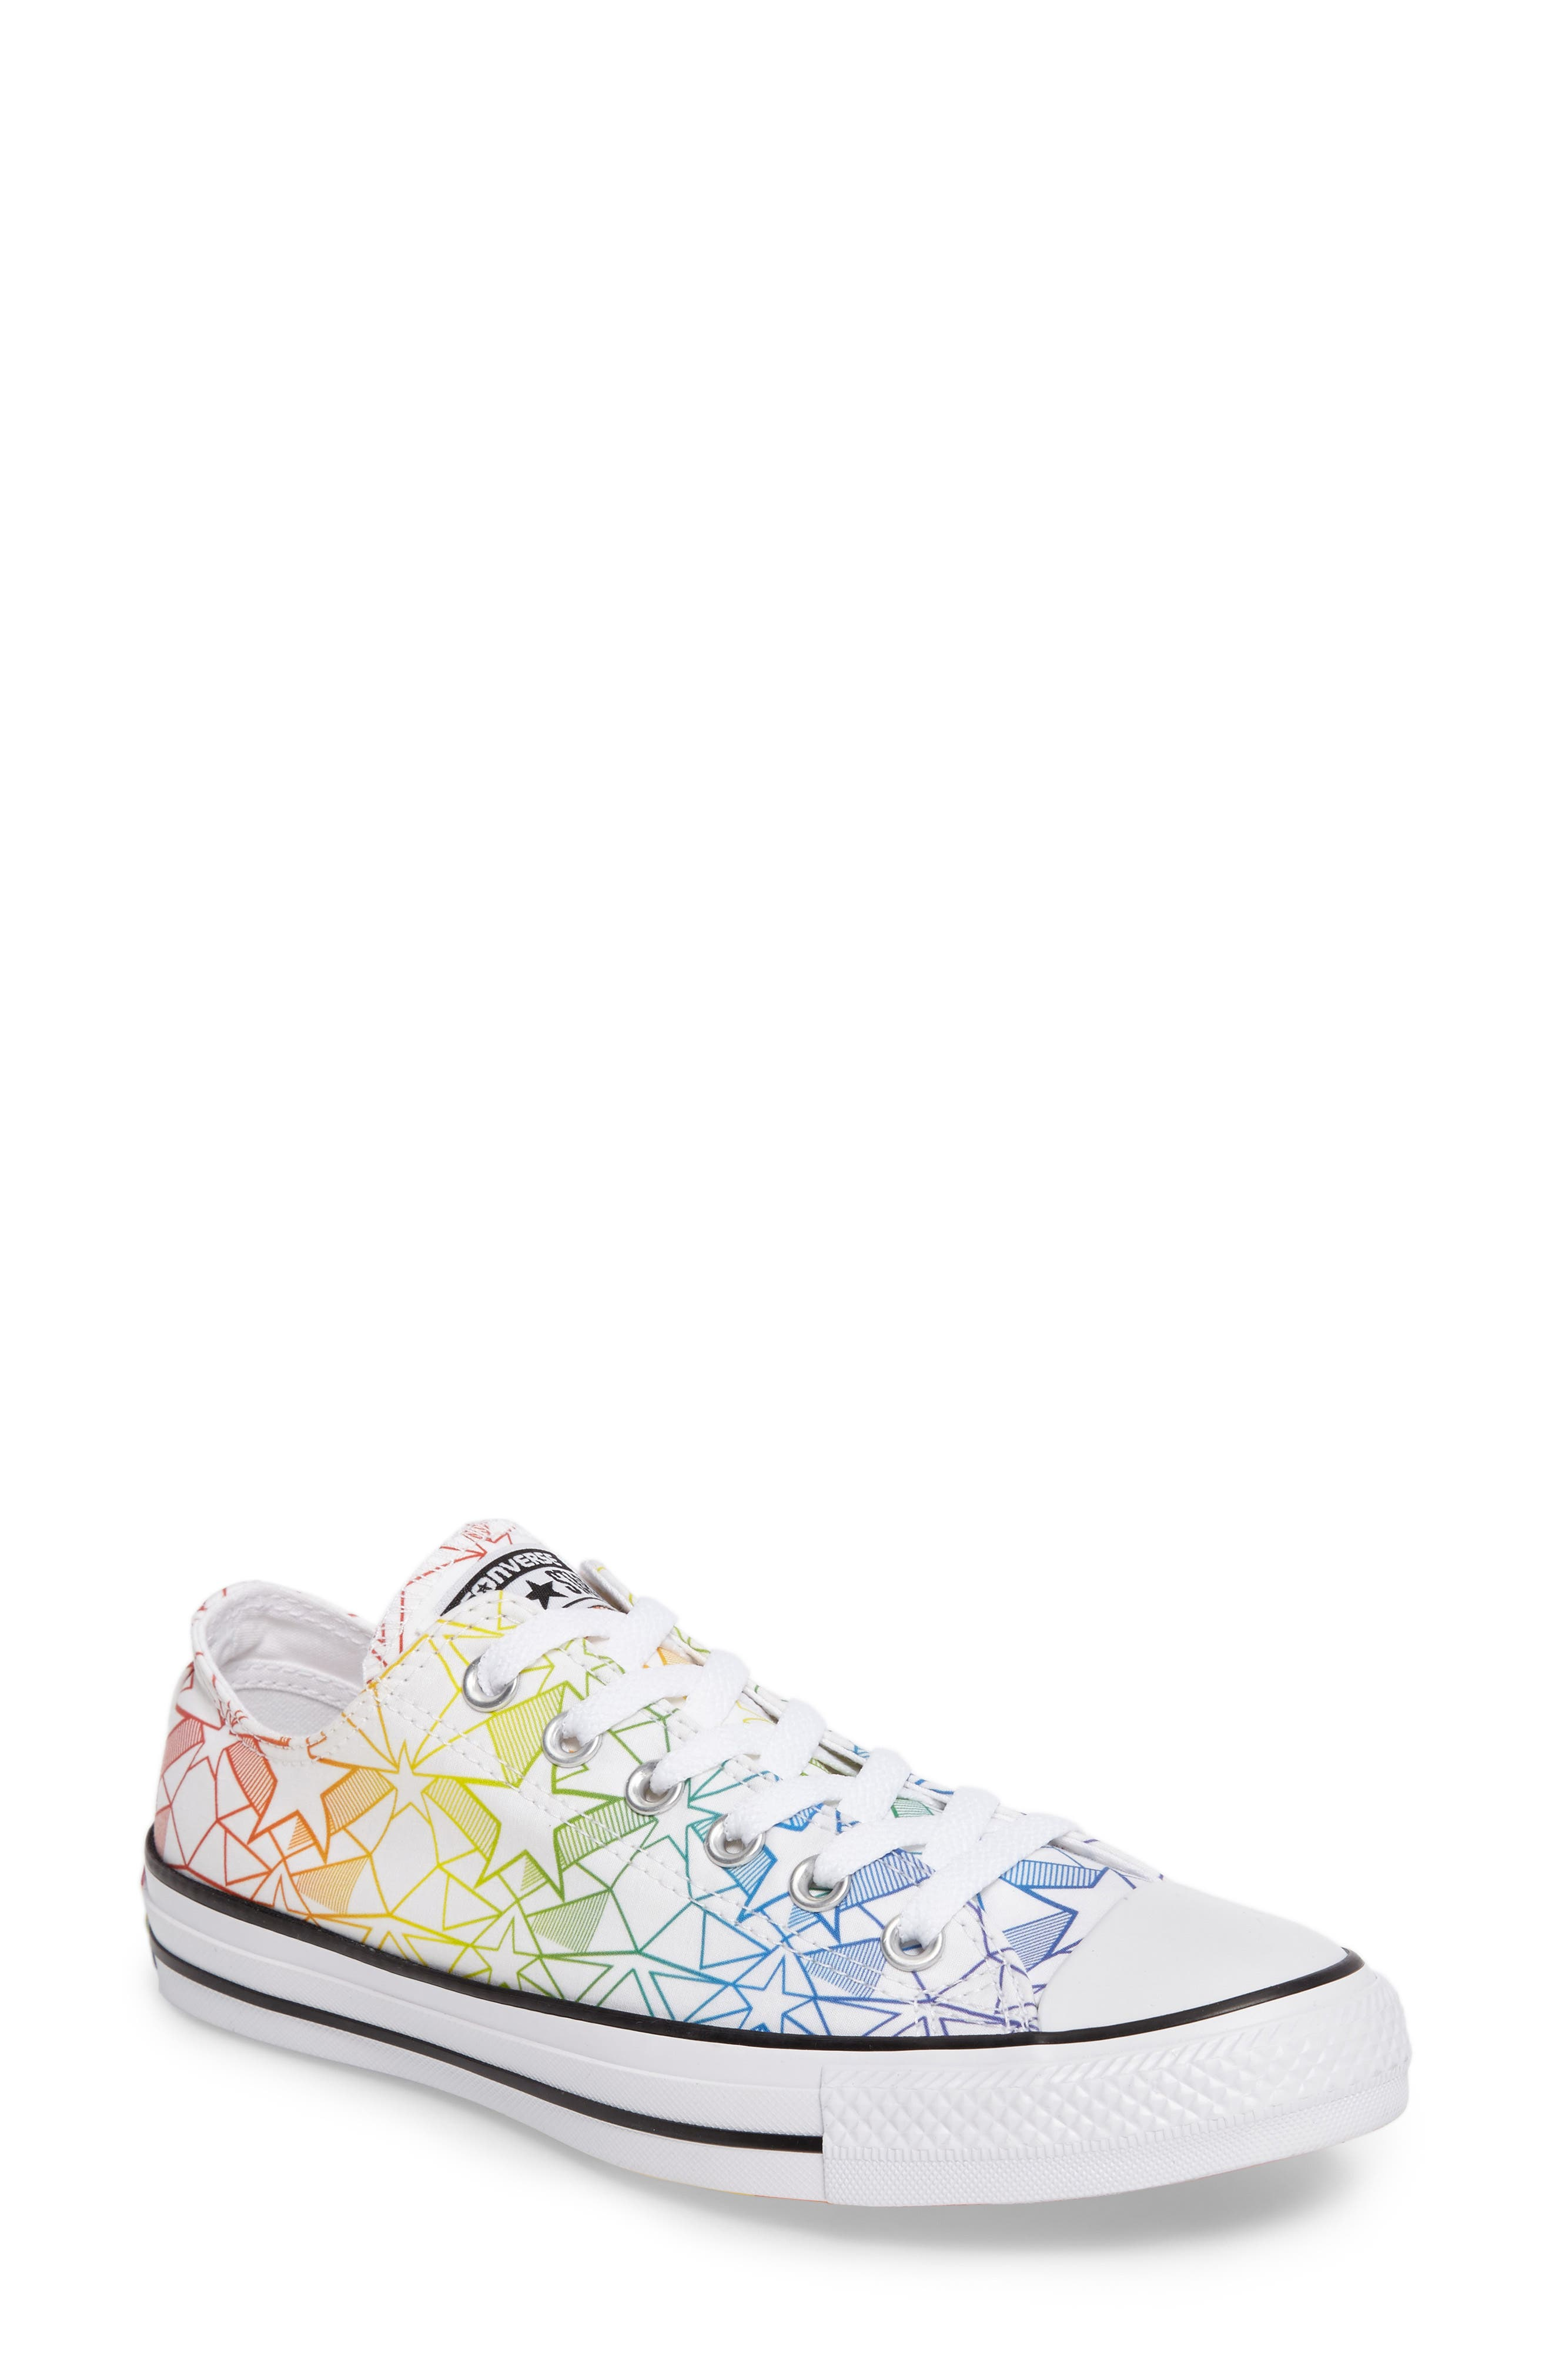 Alternate Image 1 Selected - Converse Chuck Taylor® All Star® Pride Low Top Sneaker (Women)